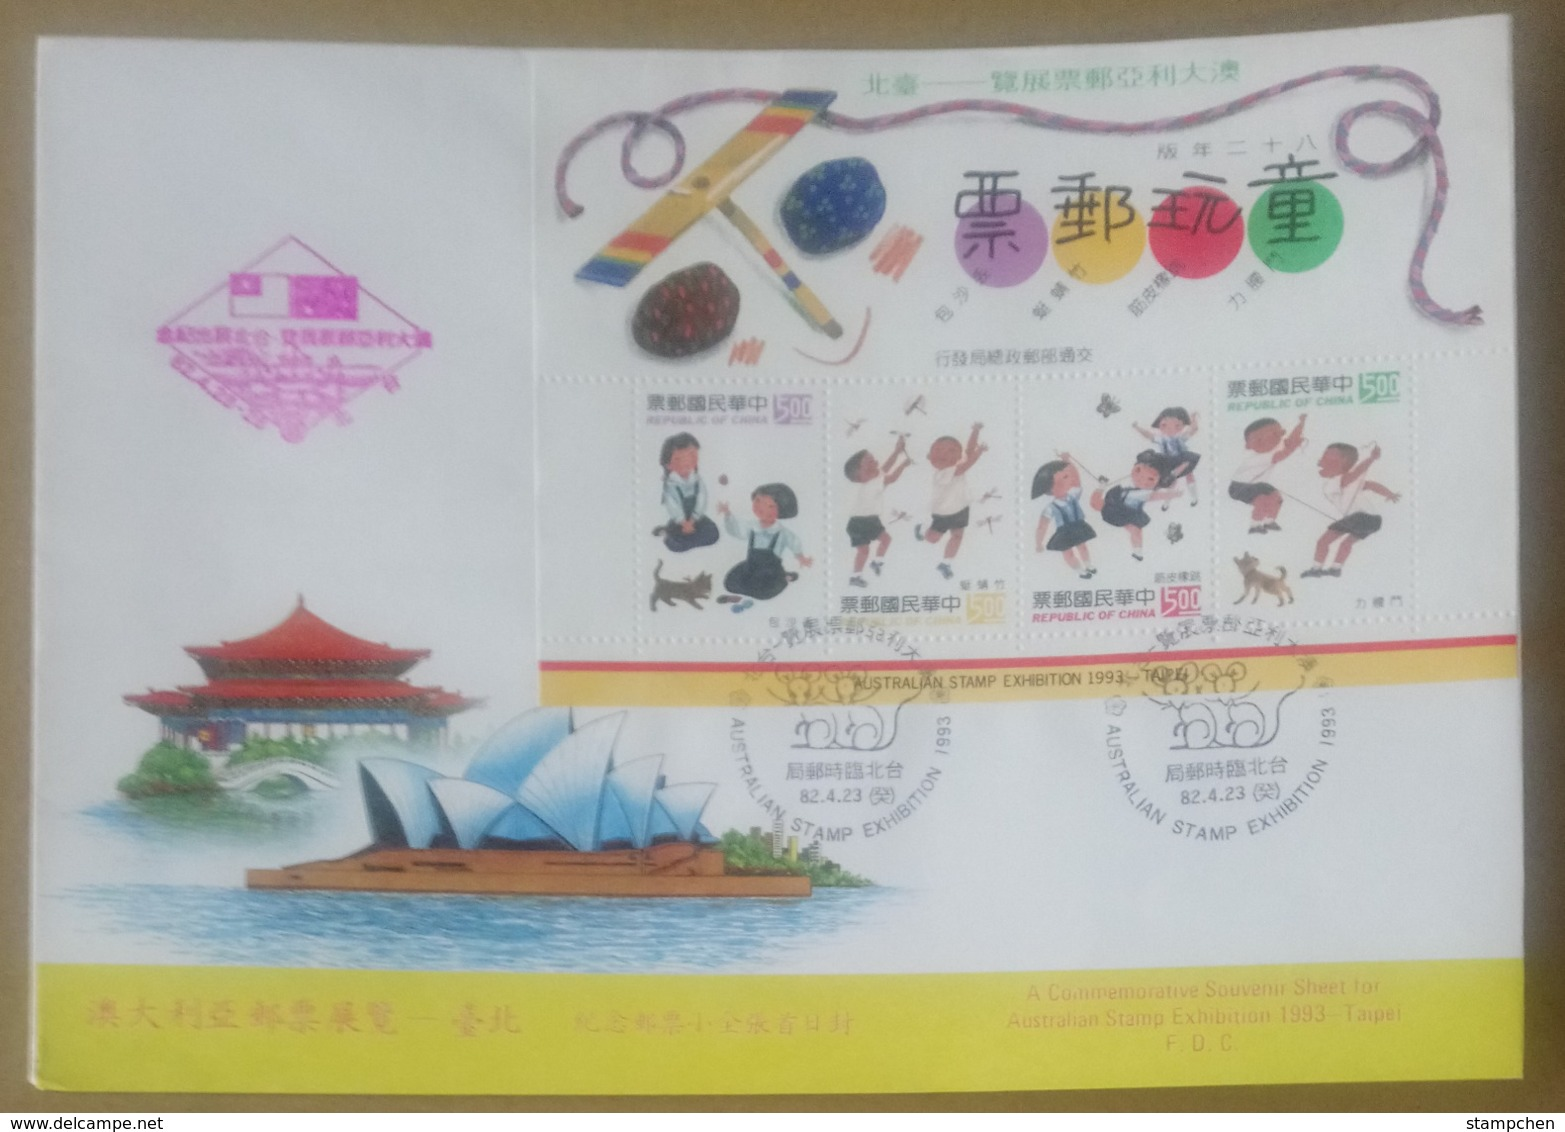 FDC Taiwan 1993 Toy Stamps S/s- Australian- Dueling Rubber Band Bamboo Sandbag Dragonfly Butterfly Cat Dog - 1945-... Republic Of China